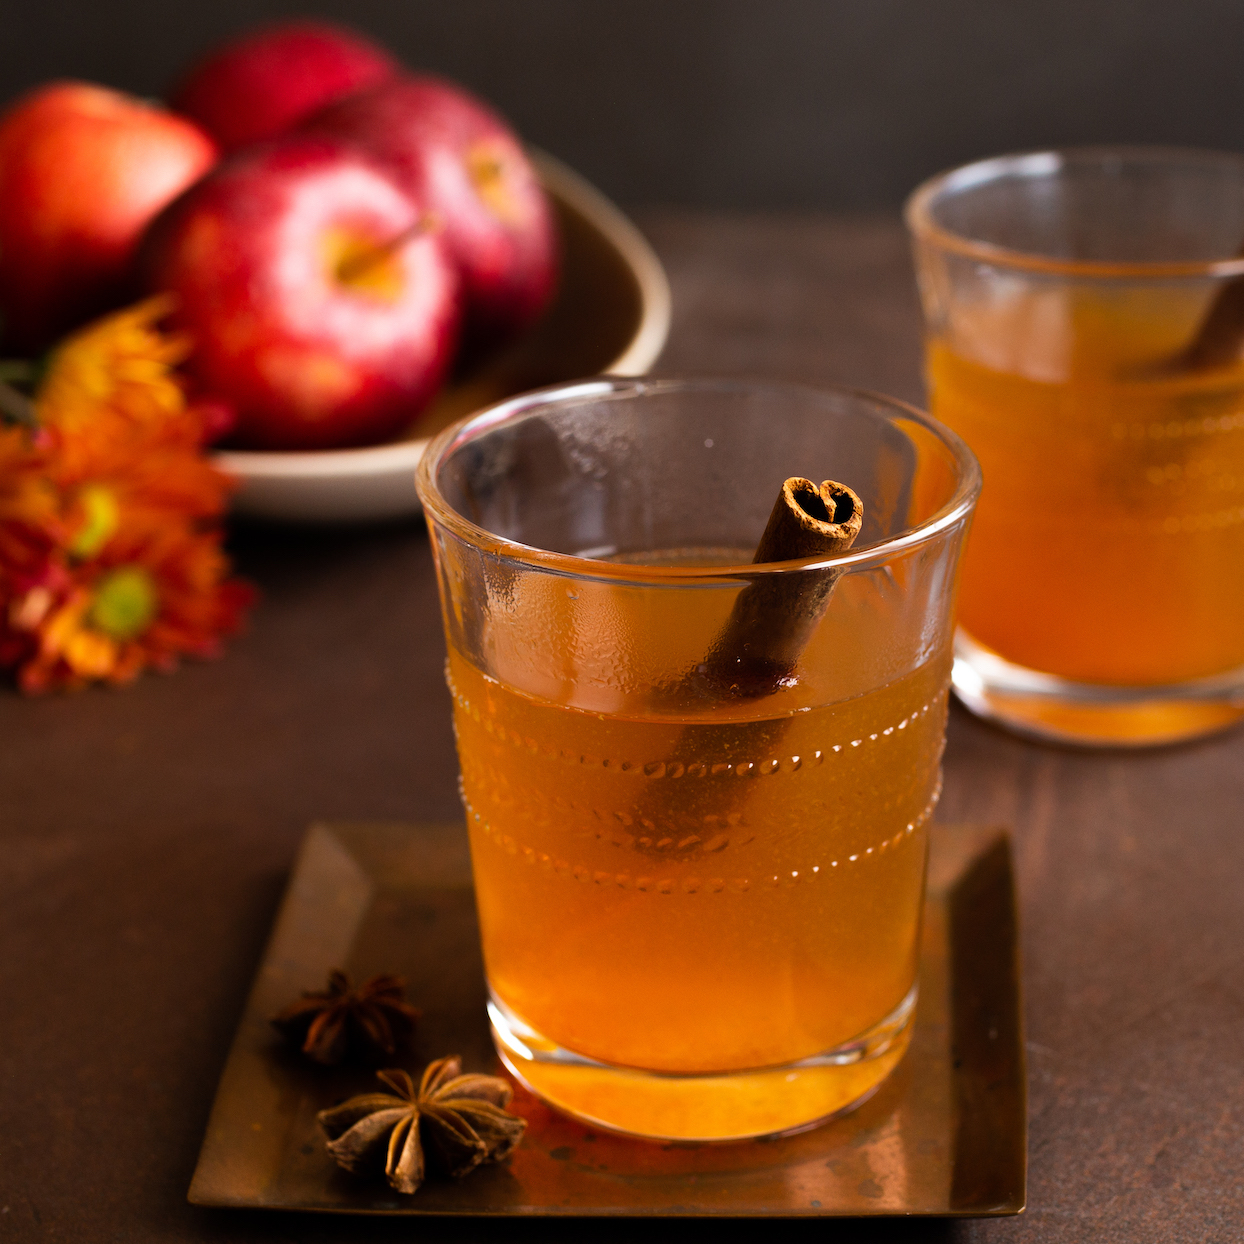 Big-Batch Hot Bourbon Cocktail with Maple & Apple Cider